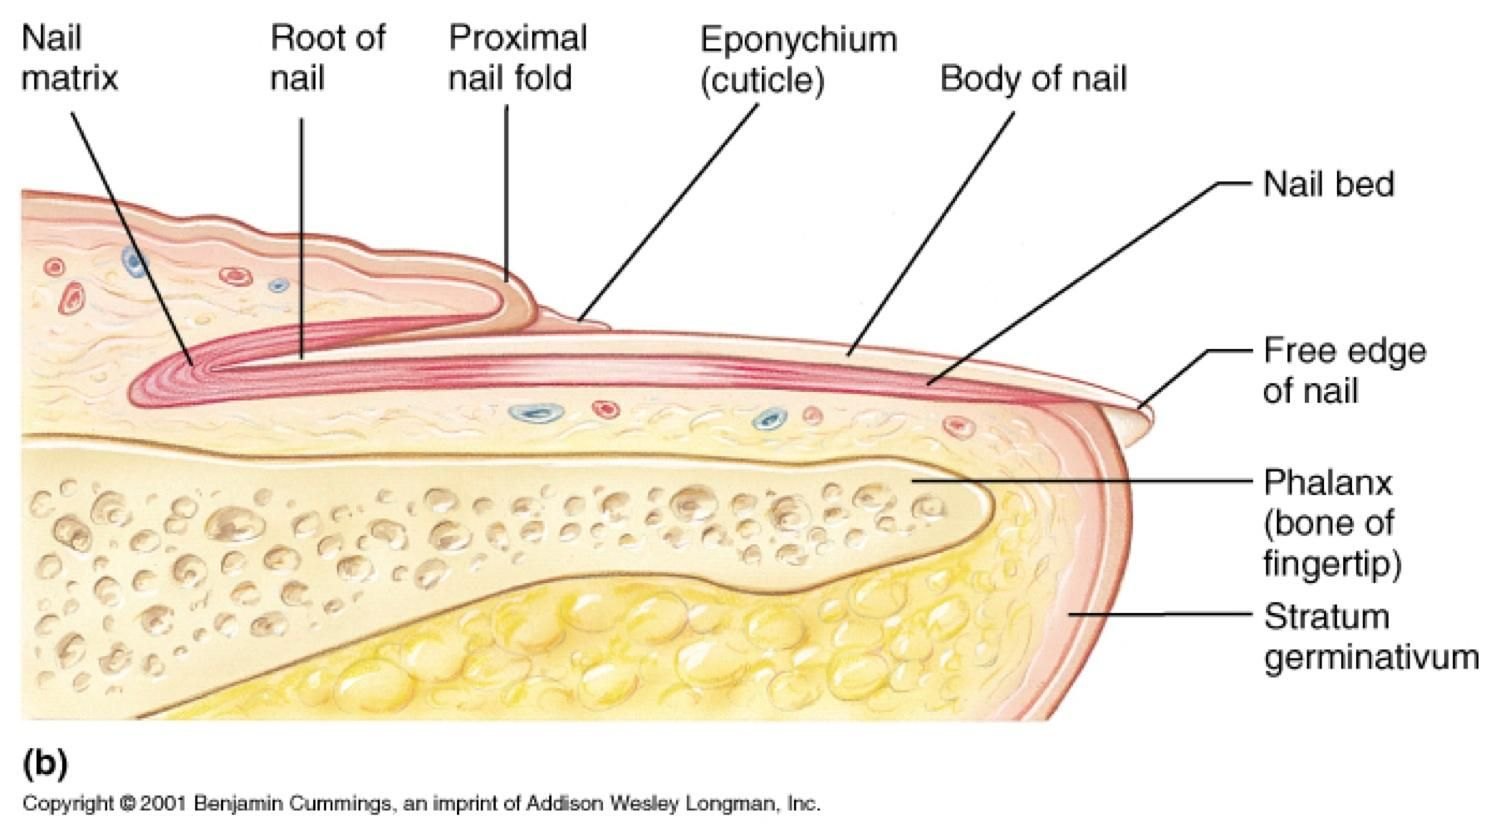 Hyponychium Known Informally As The Quick Of The Nail In